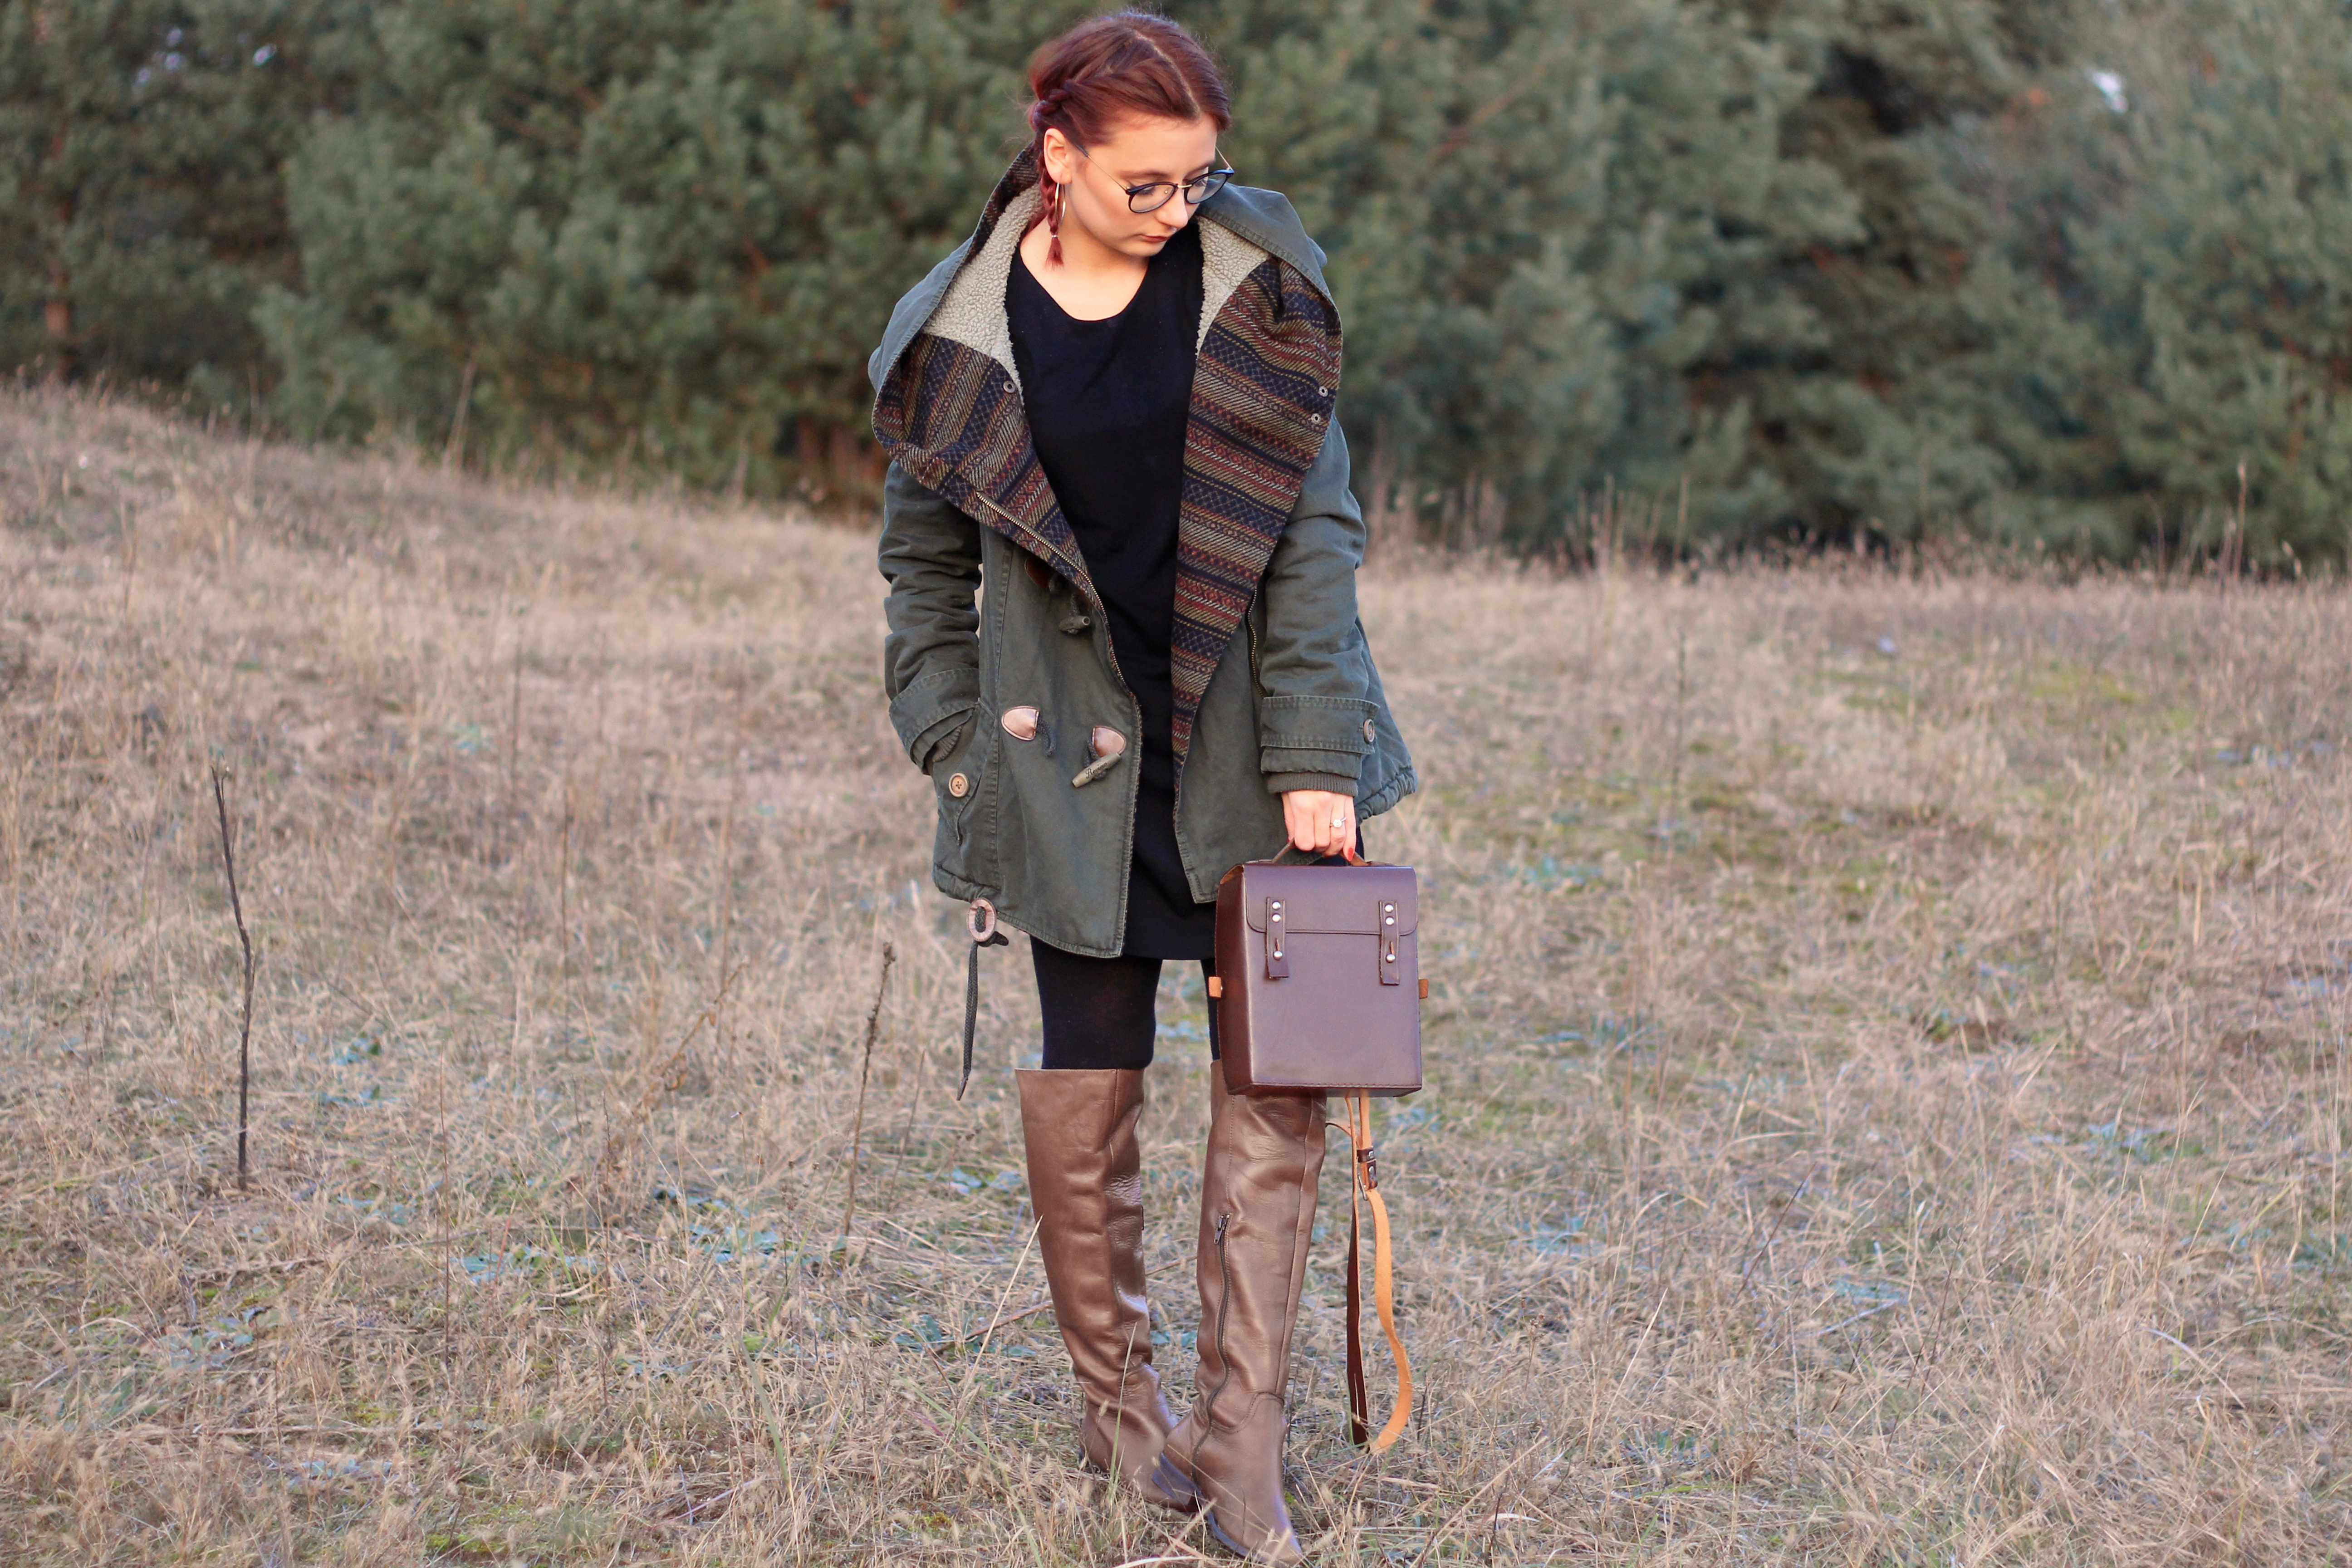 Dafflecoat, layering, kameratasche, stiefel, trend, outfit, ootd, fashionblogger, modeblogger, dearfashion, spaziergang, november, instagram, rote haare, style, lookbook